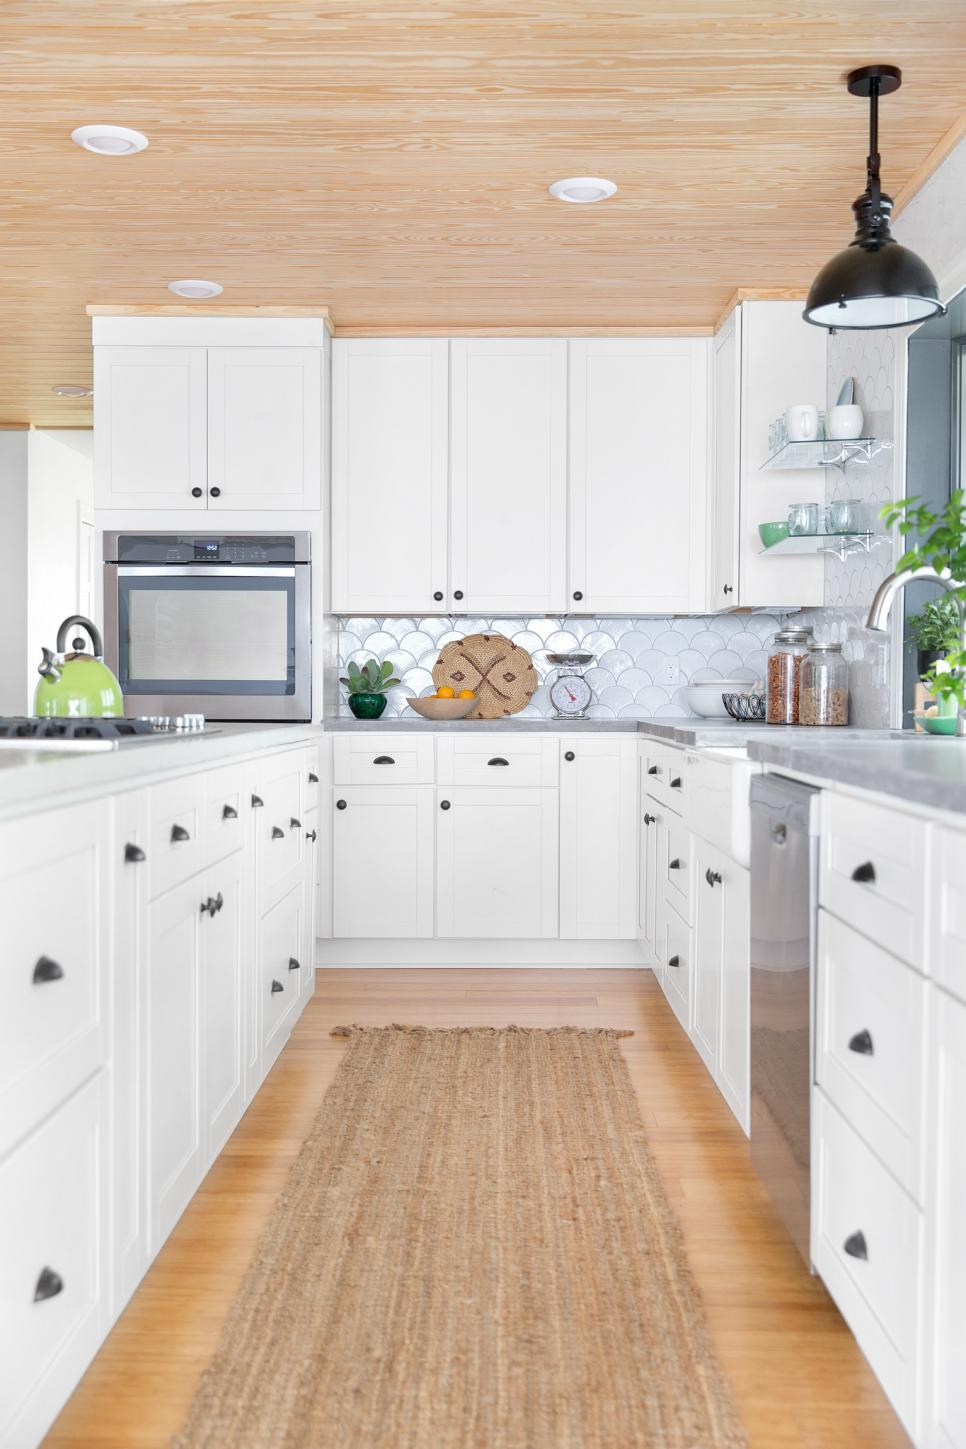 DIYBlogCabinKitchen092016 Inside the DIY Network's Blog Cabin Kitchen! All Kitchens Tile Inspiration   bc2016_kitchen-pantry_017_transition-to-pantry_h.jpg.rend_.hgtvcom.966.644 Inside the DIY Network's Blog Cabin Kitchen! All Kitchens Tile Inspiration   bc2016_kitchen-pantry_015_cabinet-mid-range_v.jpg.rend_.hgtvcom.966.1449 Inside the DIY Network's Blog Cabin Kitchen! All Kitchens Tile Inspiration   bc2016_kitchen-pantry_013_mid-range_v.jpg.rend_.hgtvcom.966.1449 Inside the DIY Network's Blog Cabin Kitchen! All Kitchens Tile Inspiration